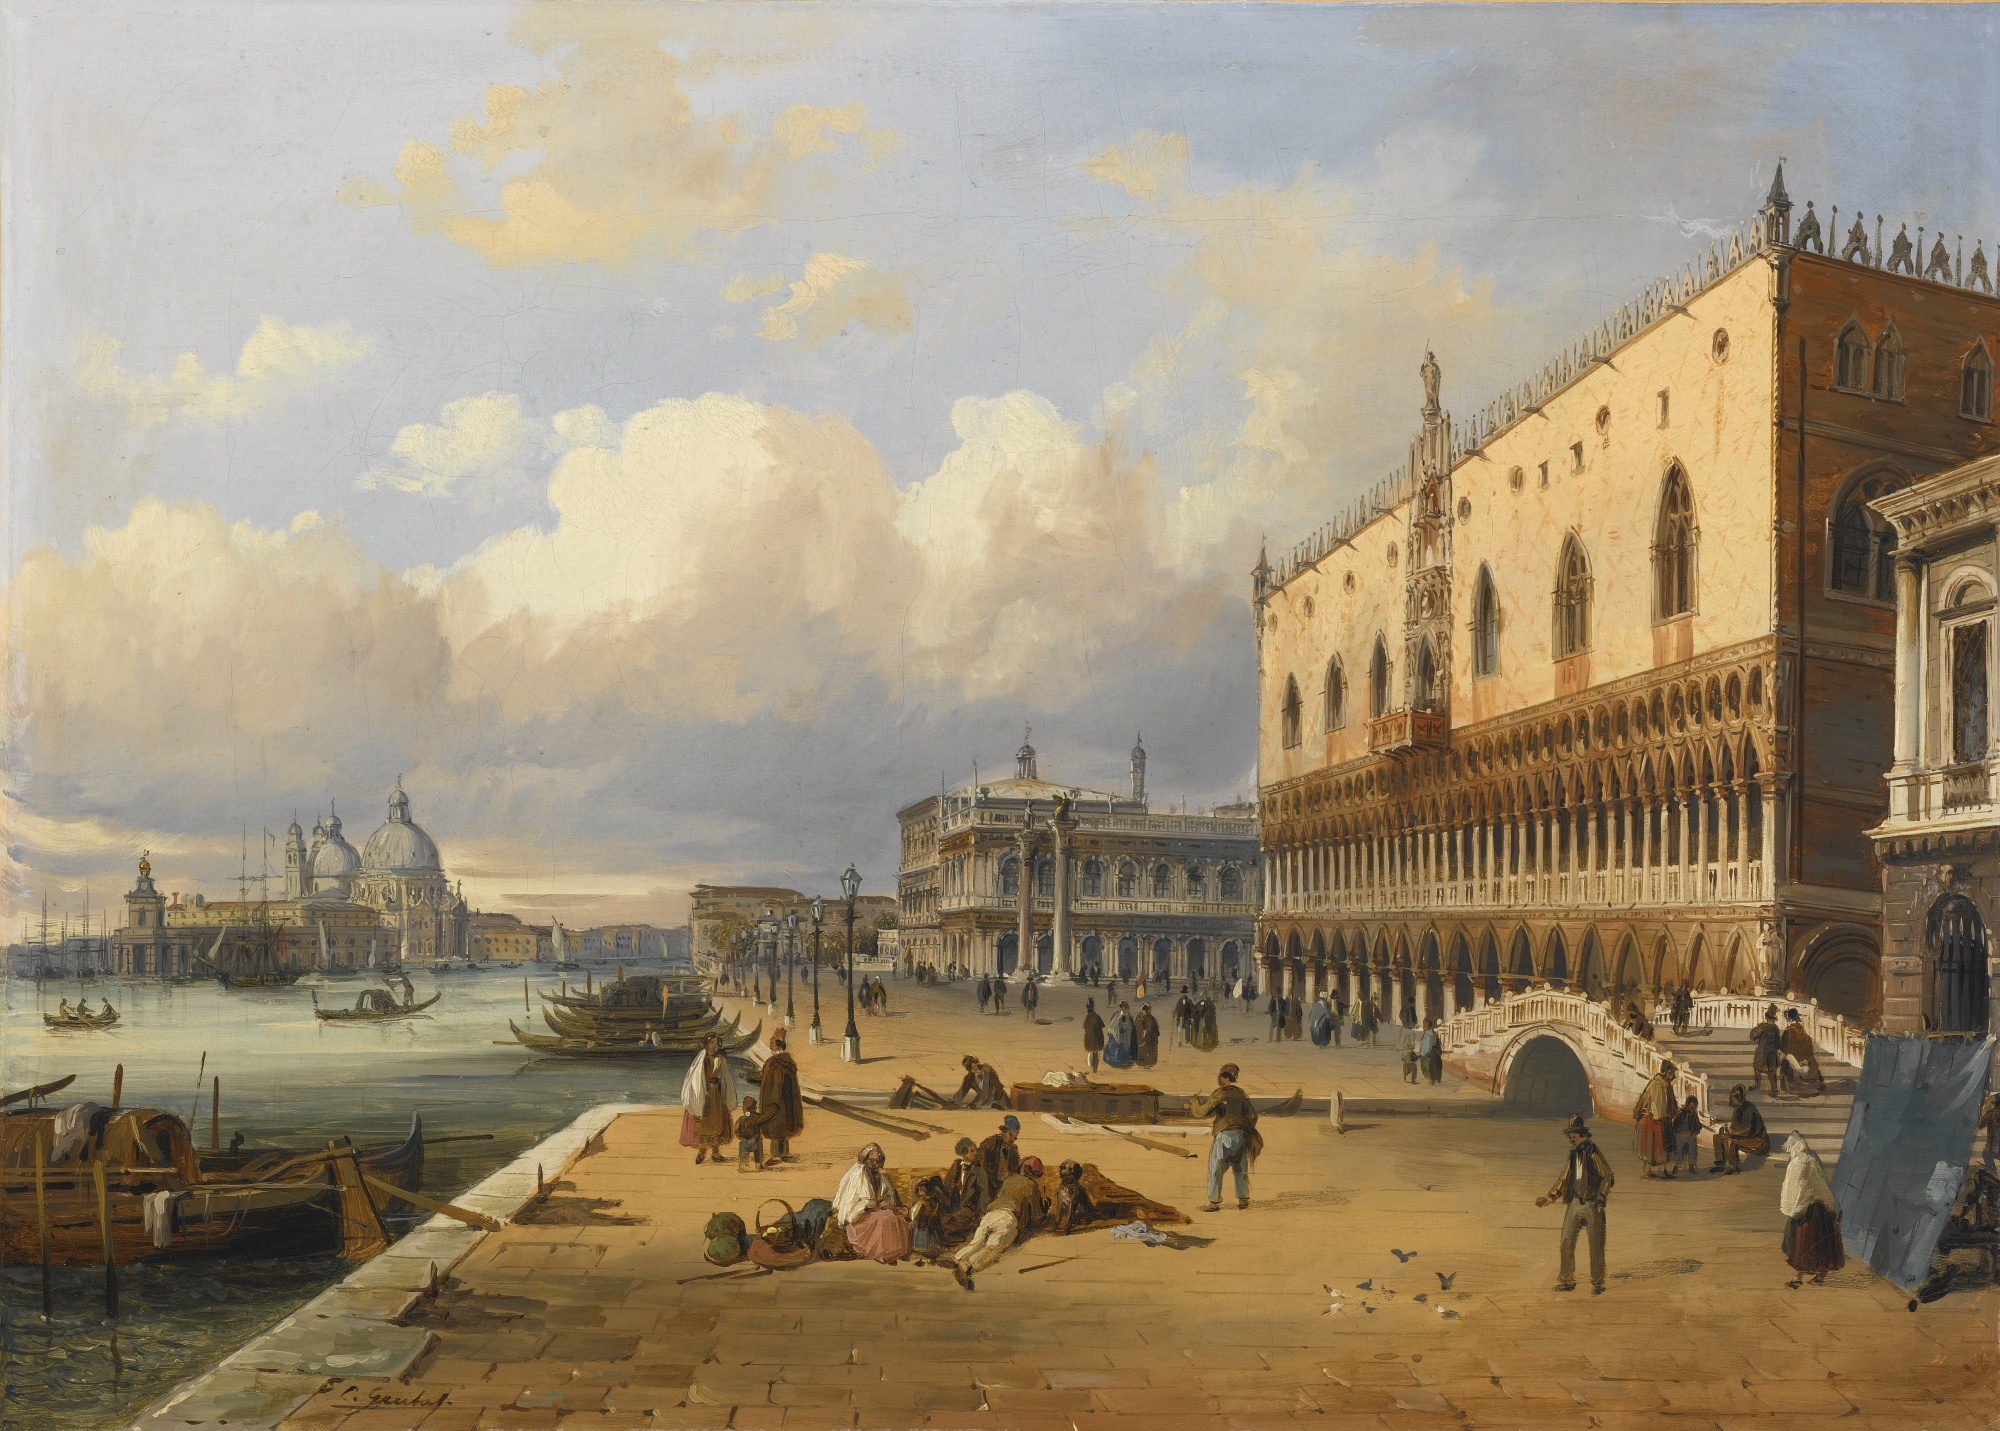 Carlo_Grubacs_Venice,_a_View_of_the_Doge's_Palace_and_Piazzetta